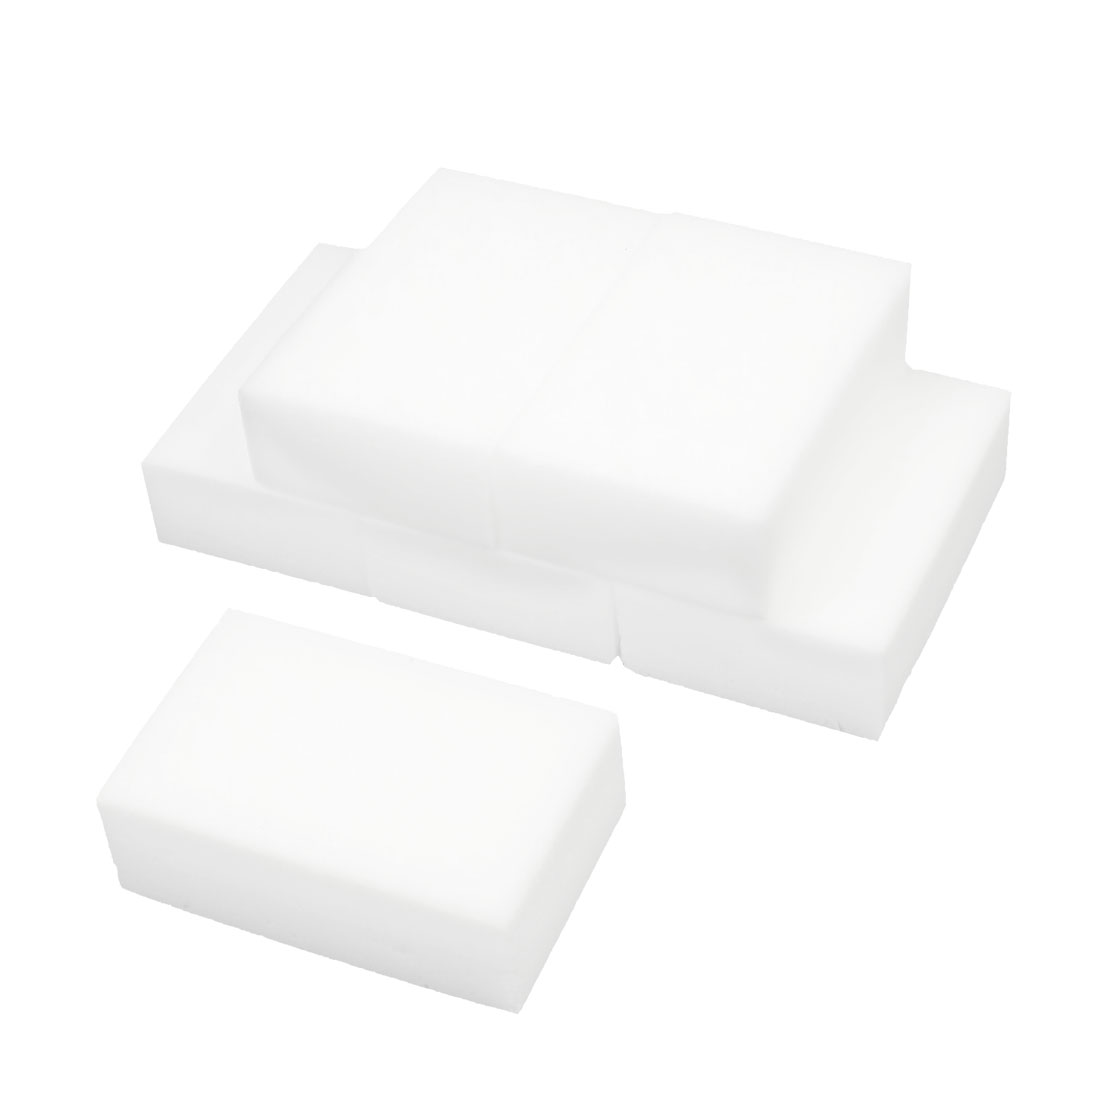 Home Furniture Office Boat Auto Car Sponge Block Cleaning Tool White 6 Pcs